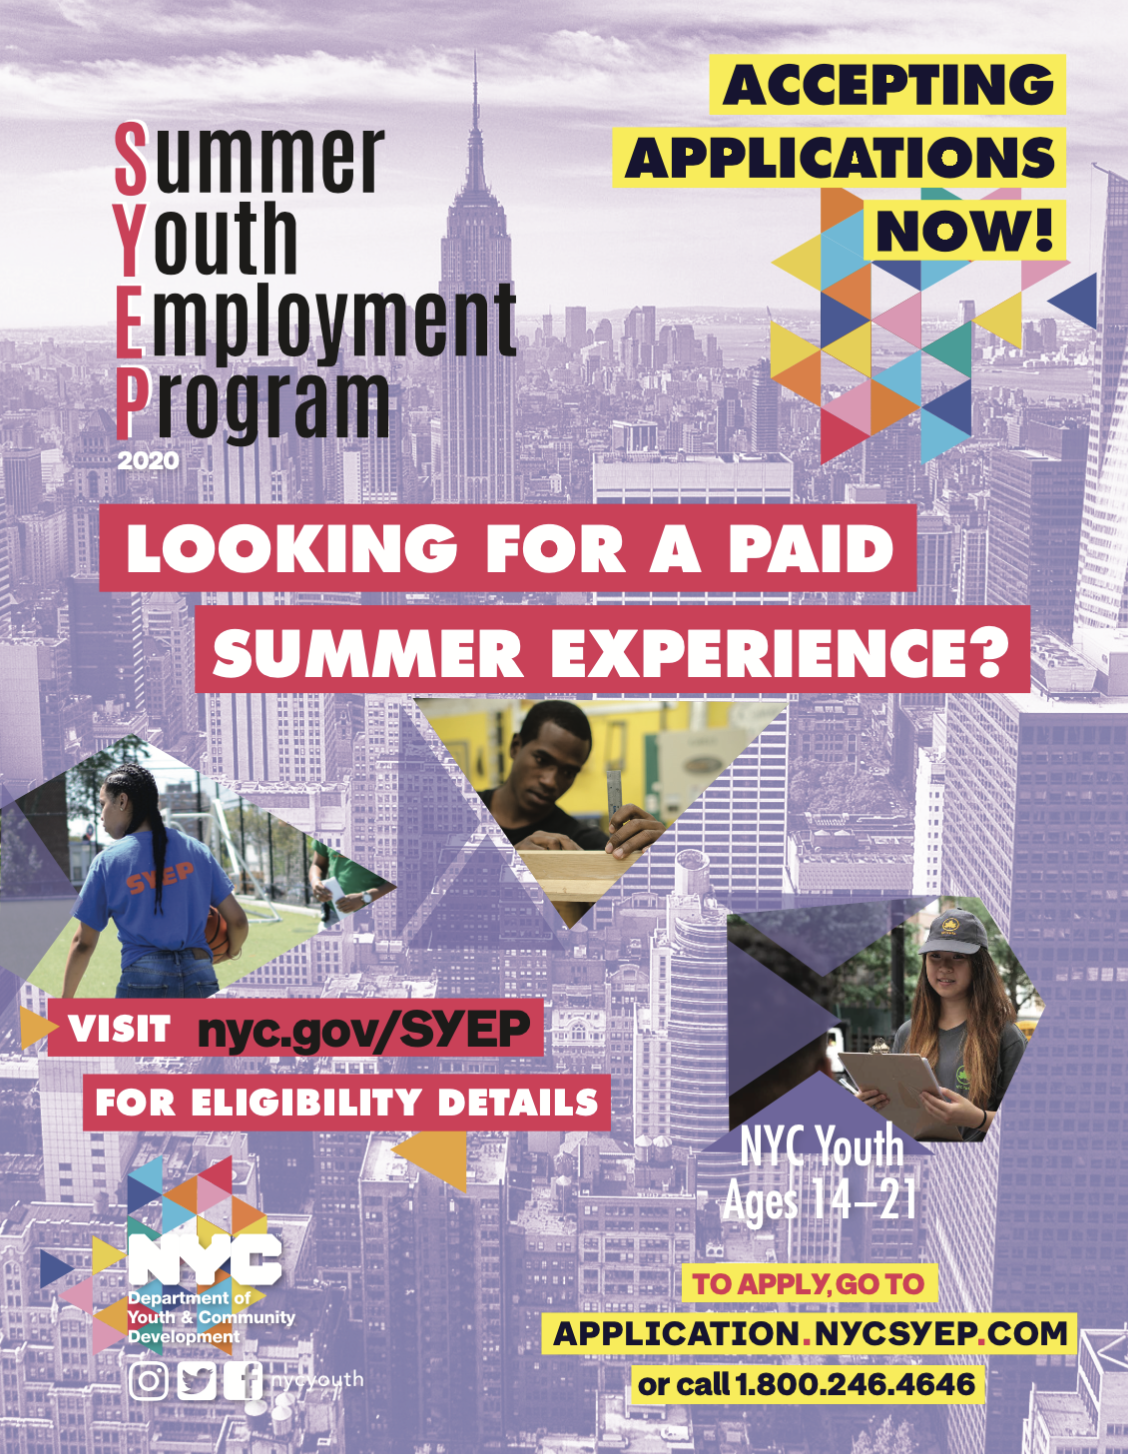 Summer Youth Employment Program 2020 Application Deadline April 10th Jamaica311